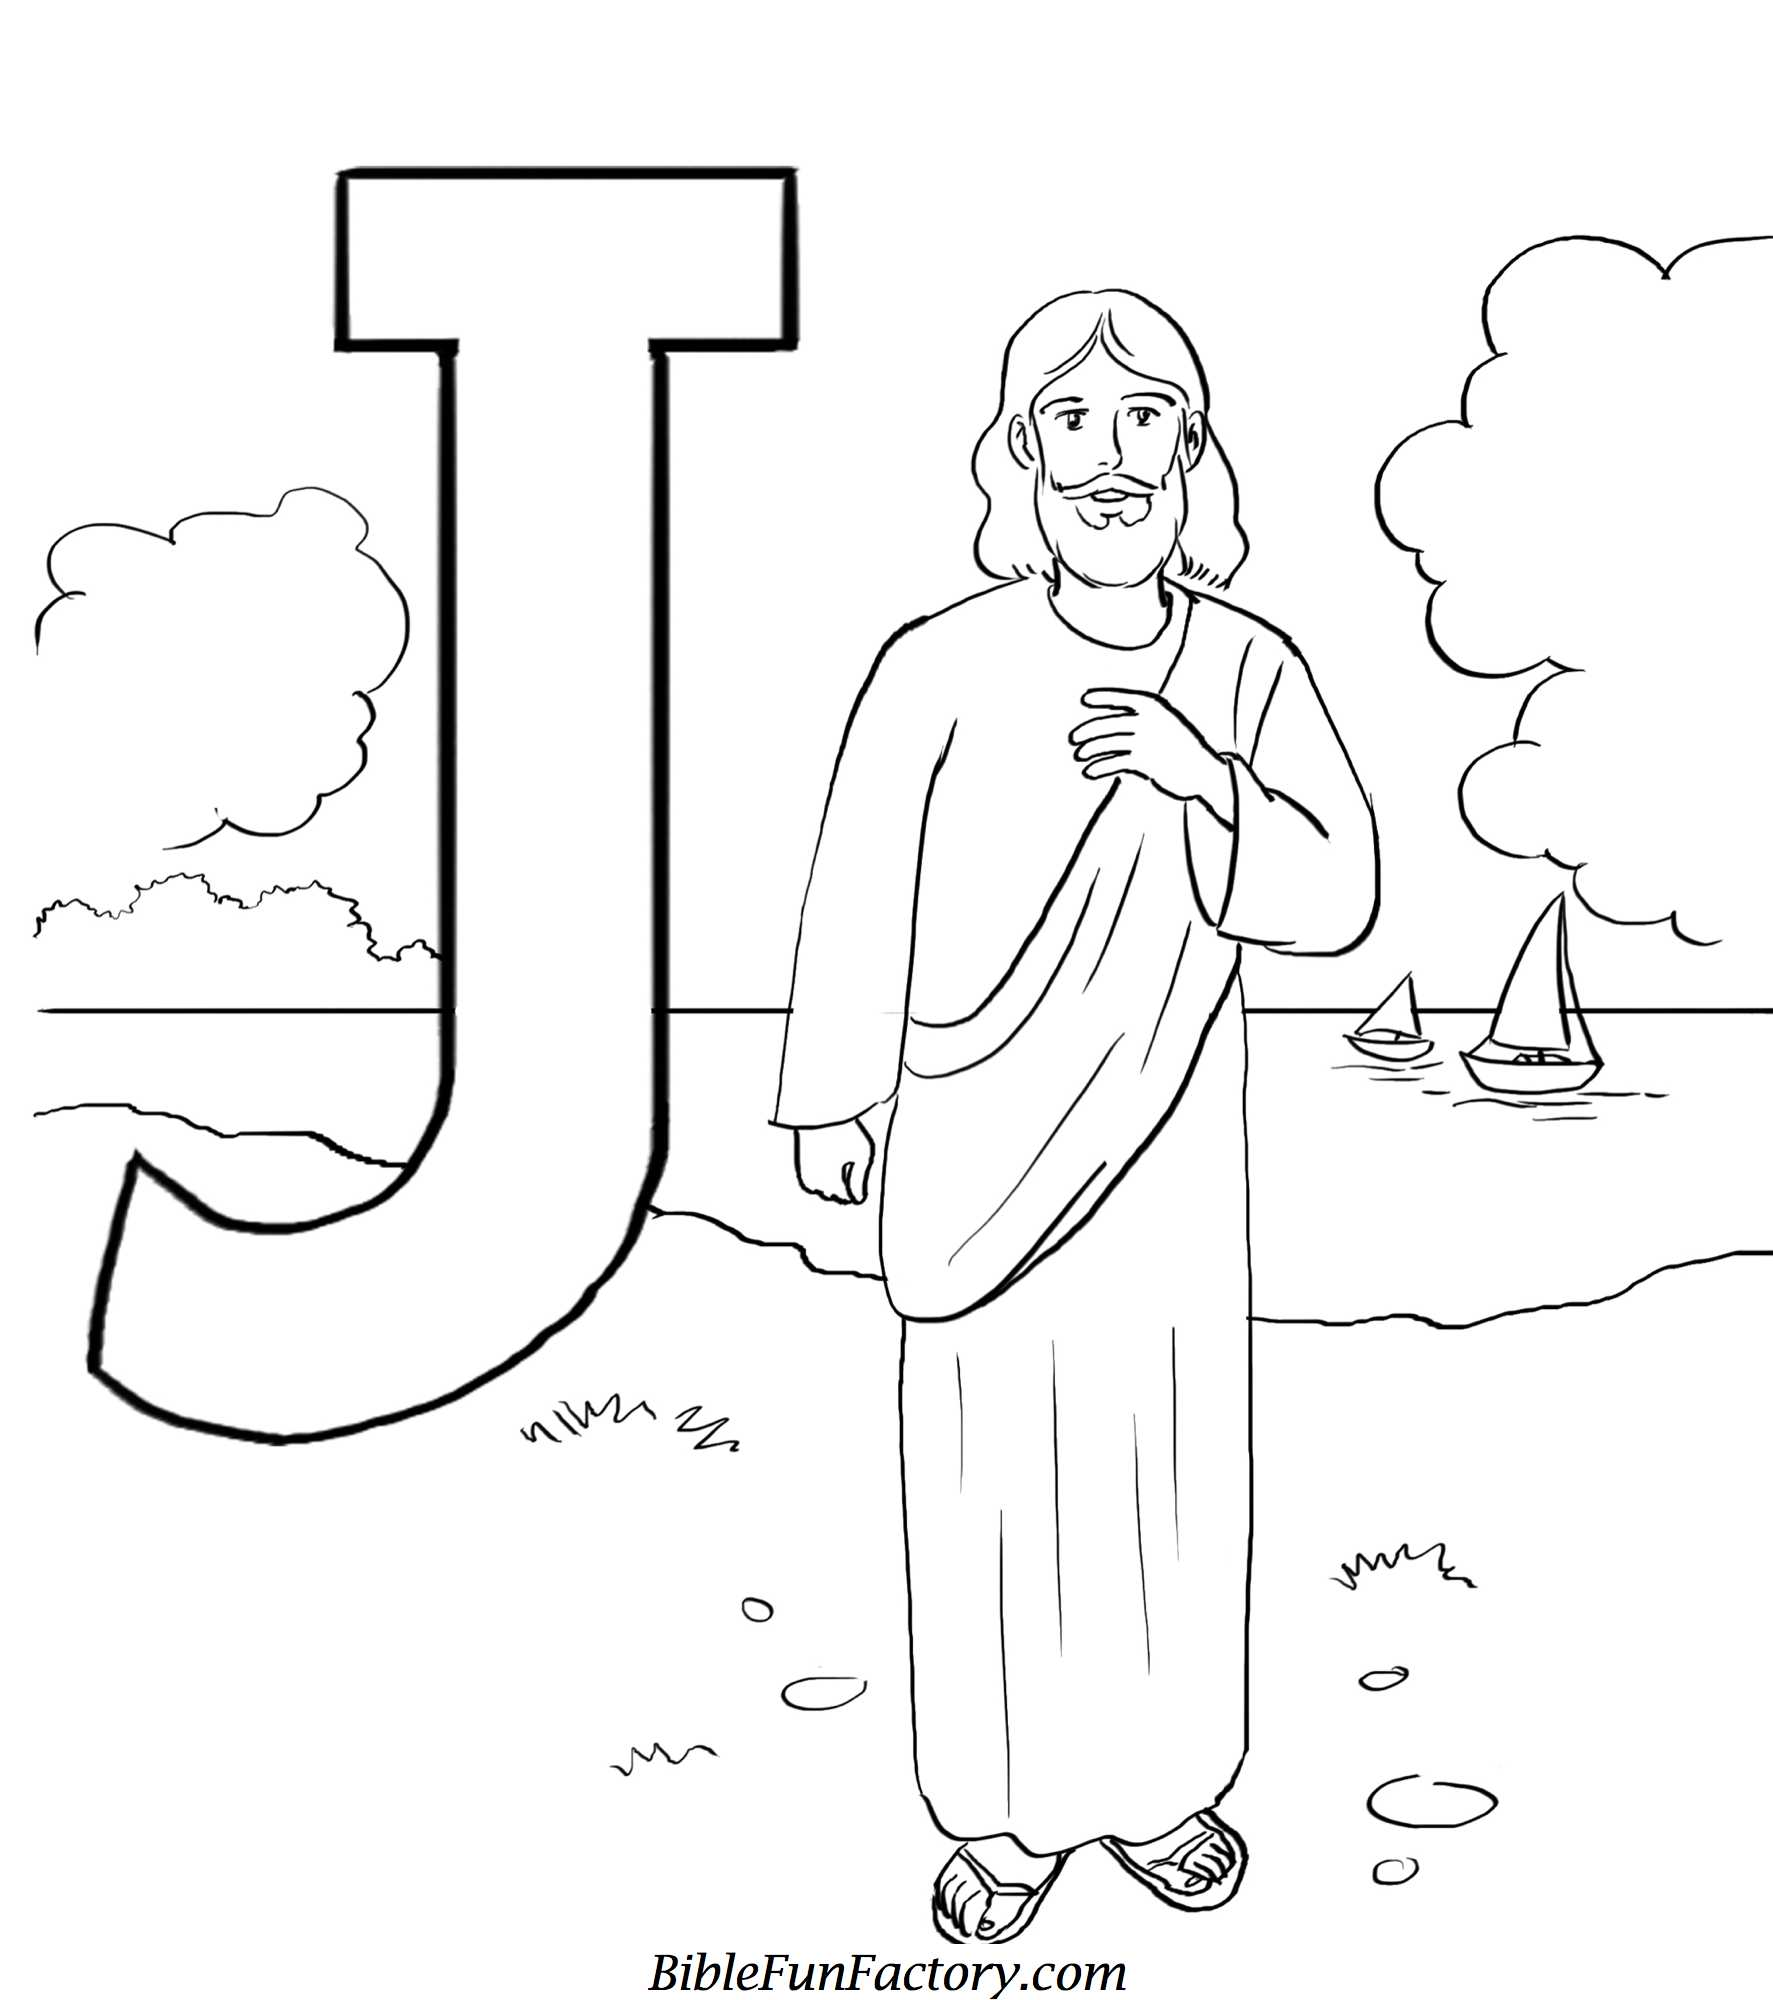 J_For_Jesus_Coloring_Page_01